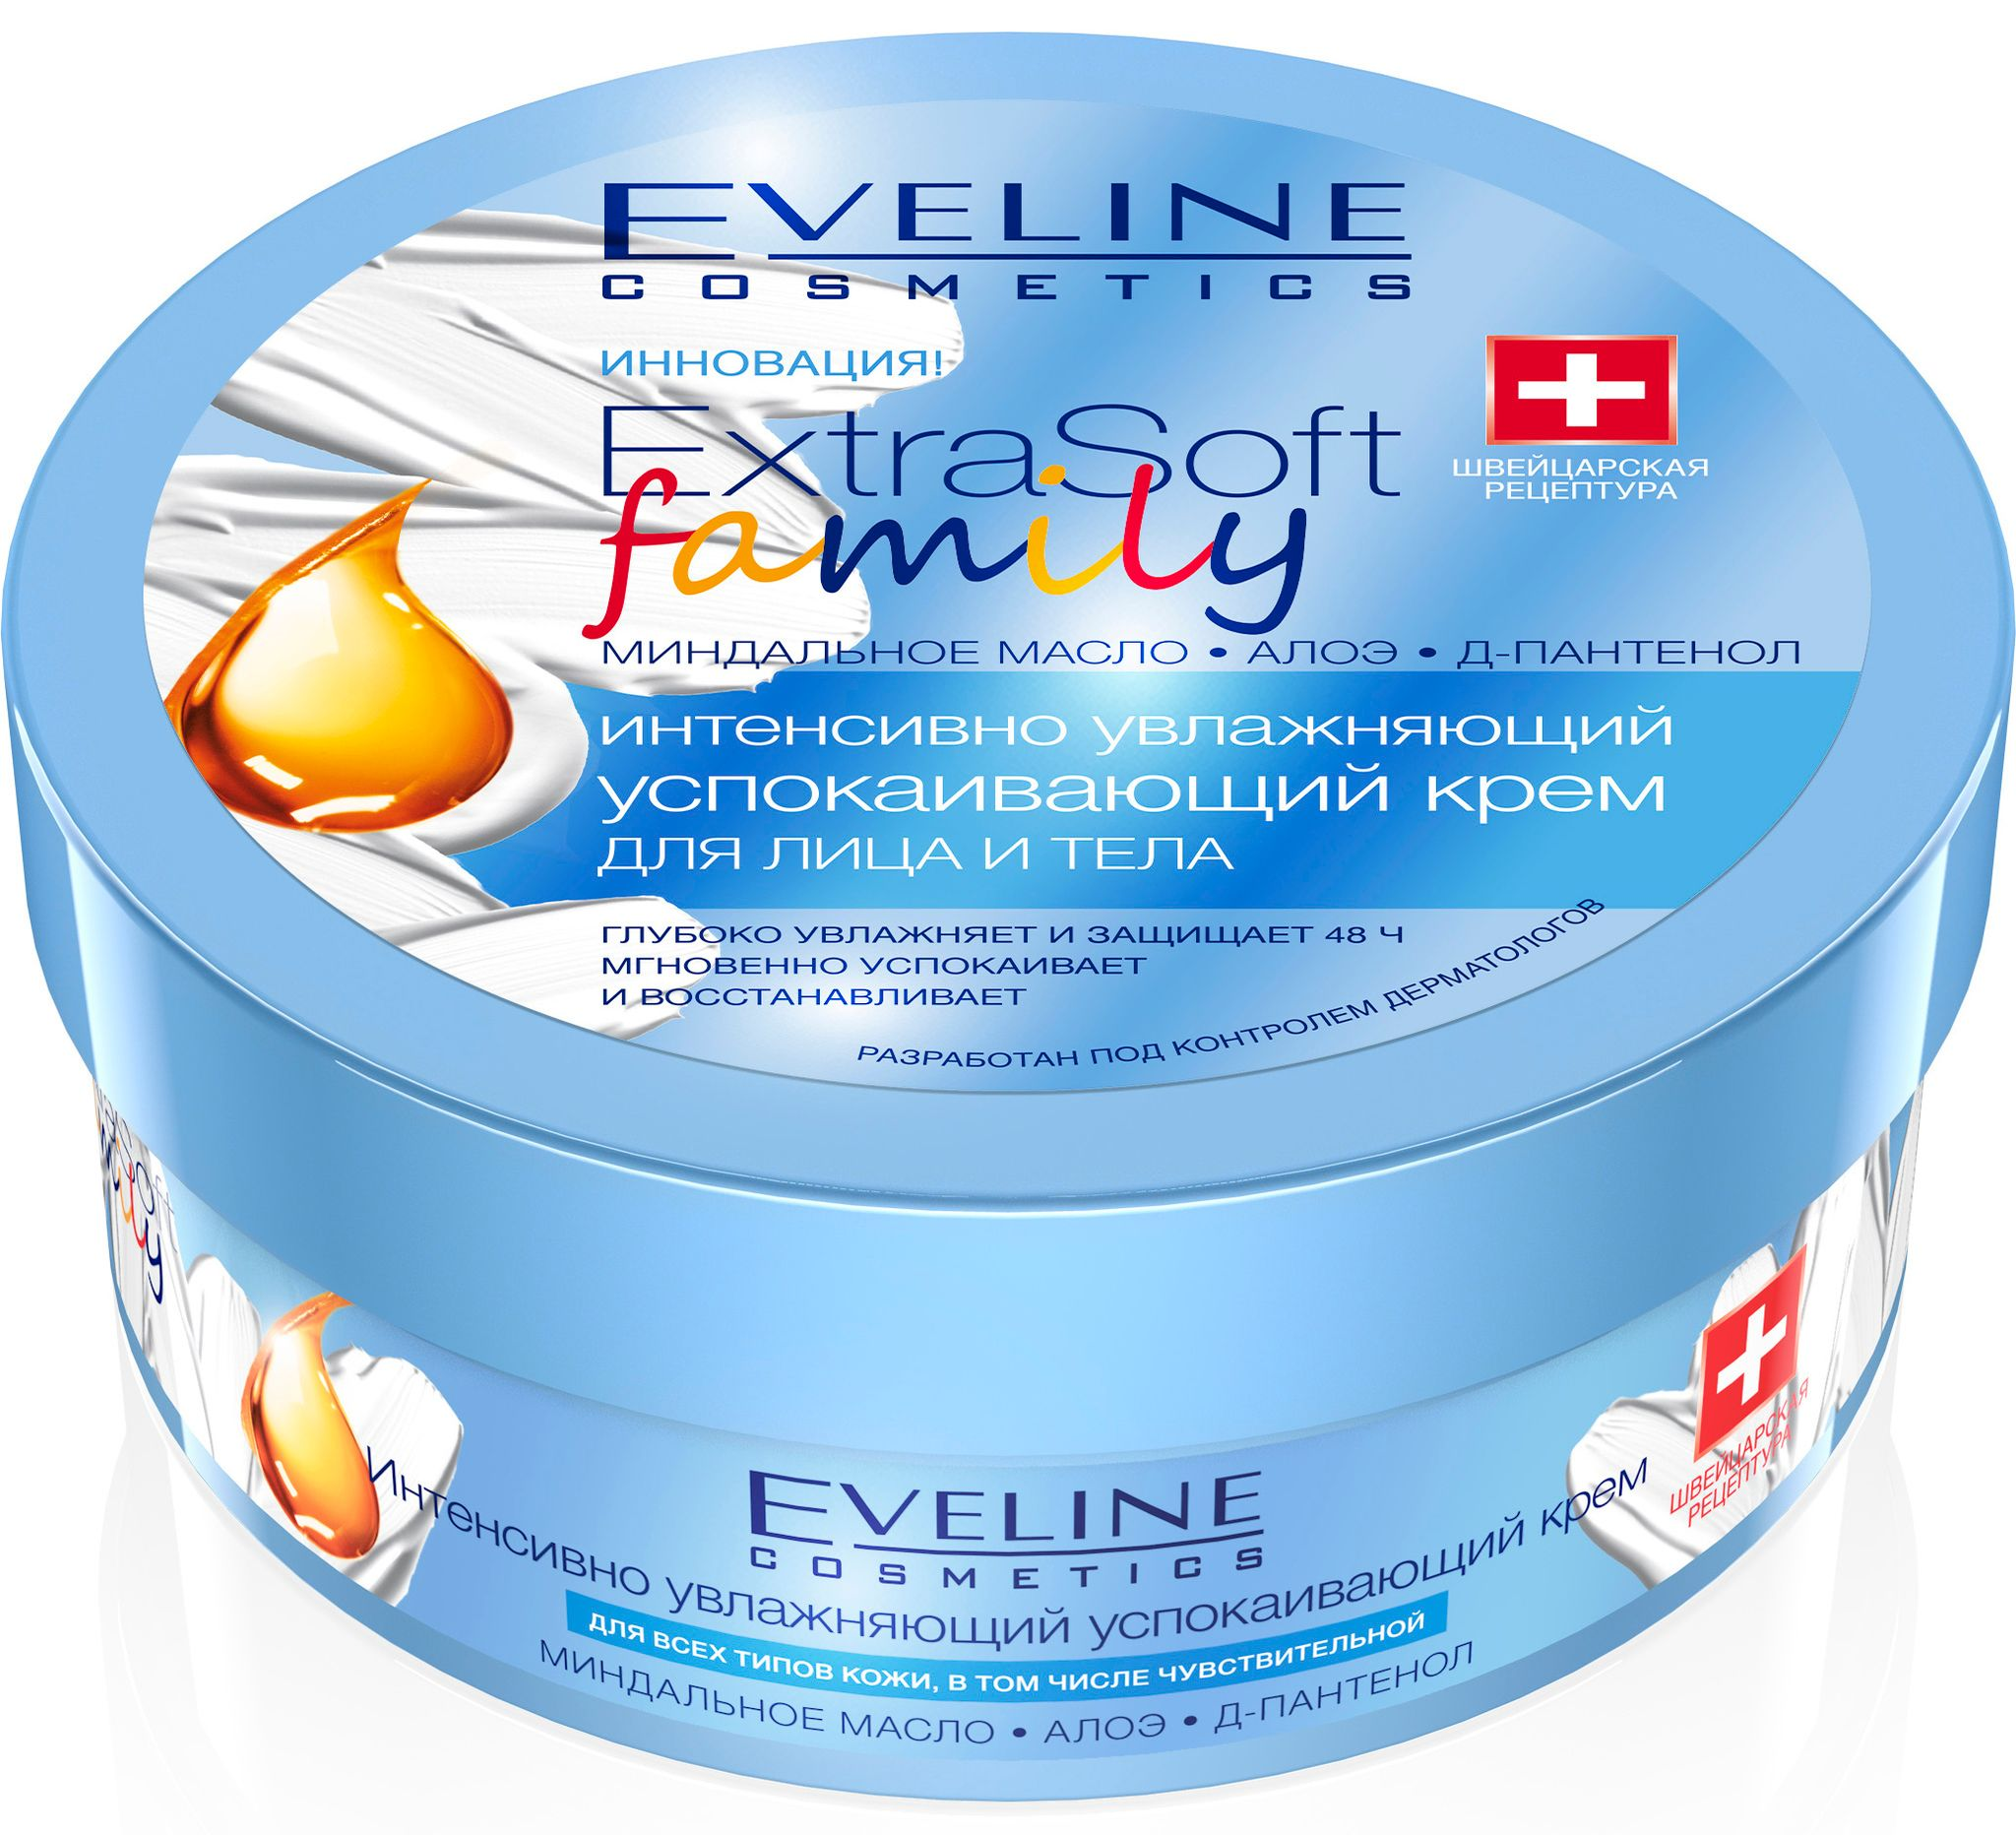 Intensely moisturizing soothing cream for face and body series extra soft family, Eveline, 175 ml